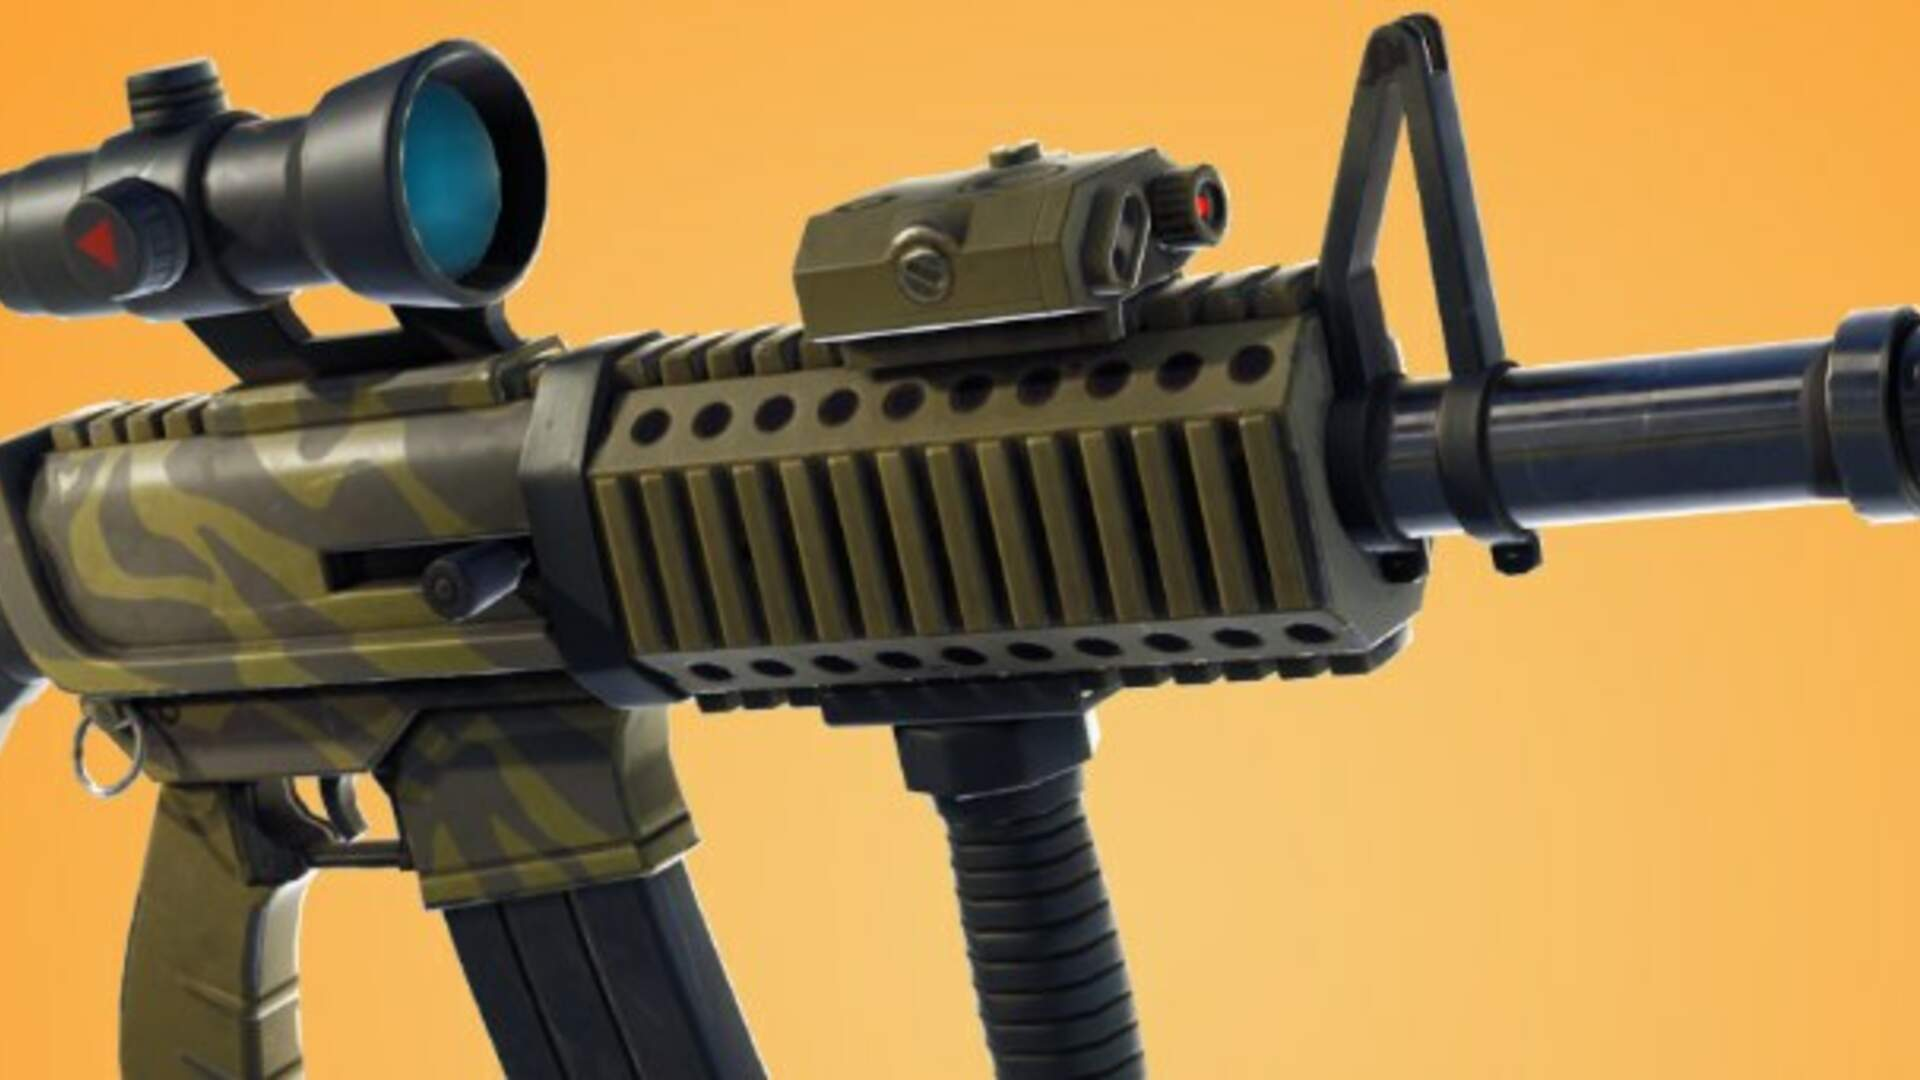 Fortnite V4.4 Update Out Now, Adds New Assault Rifle and Sniper Shootout Mode